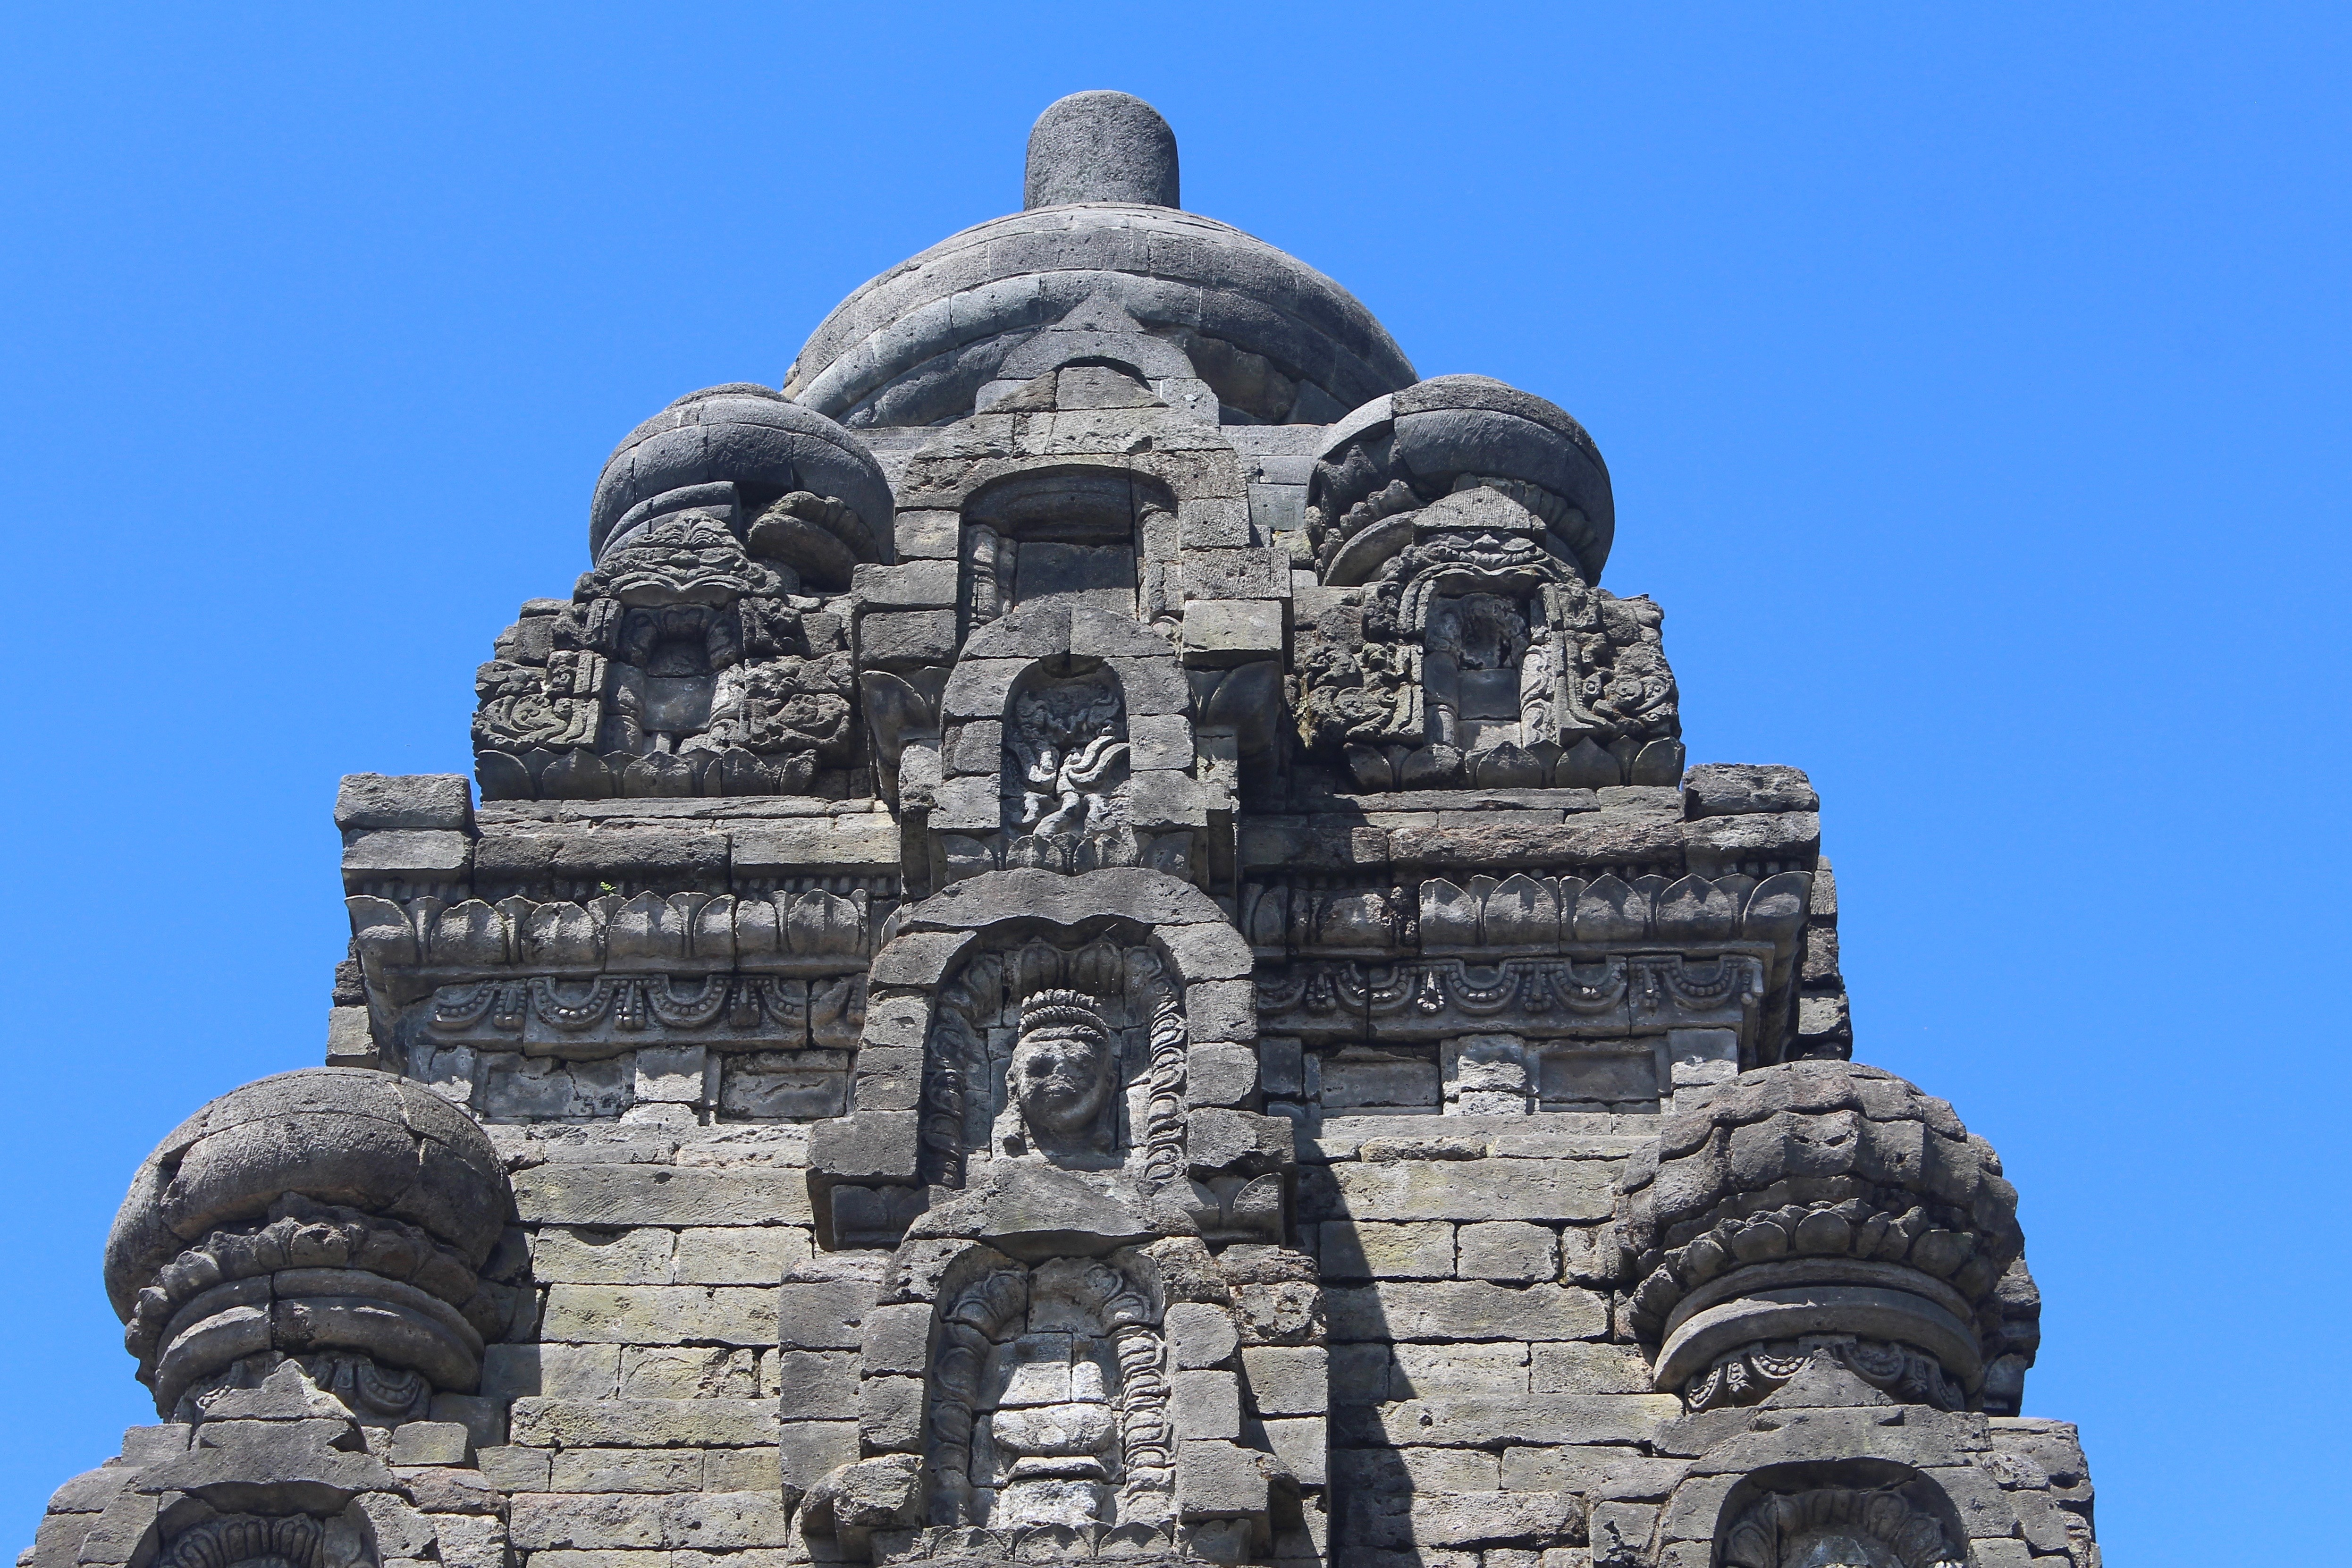 Close-up of stone temple roof with face carved in relief